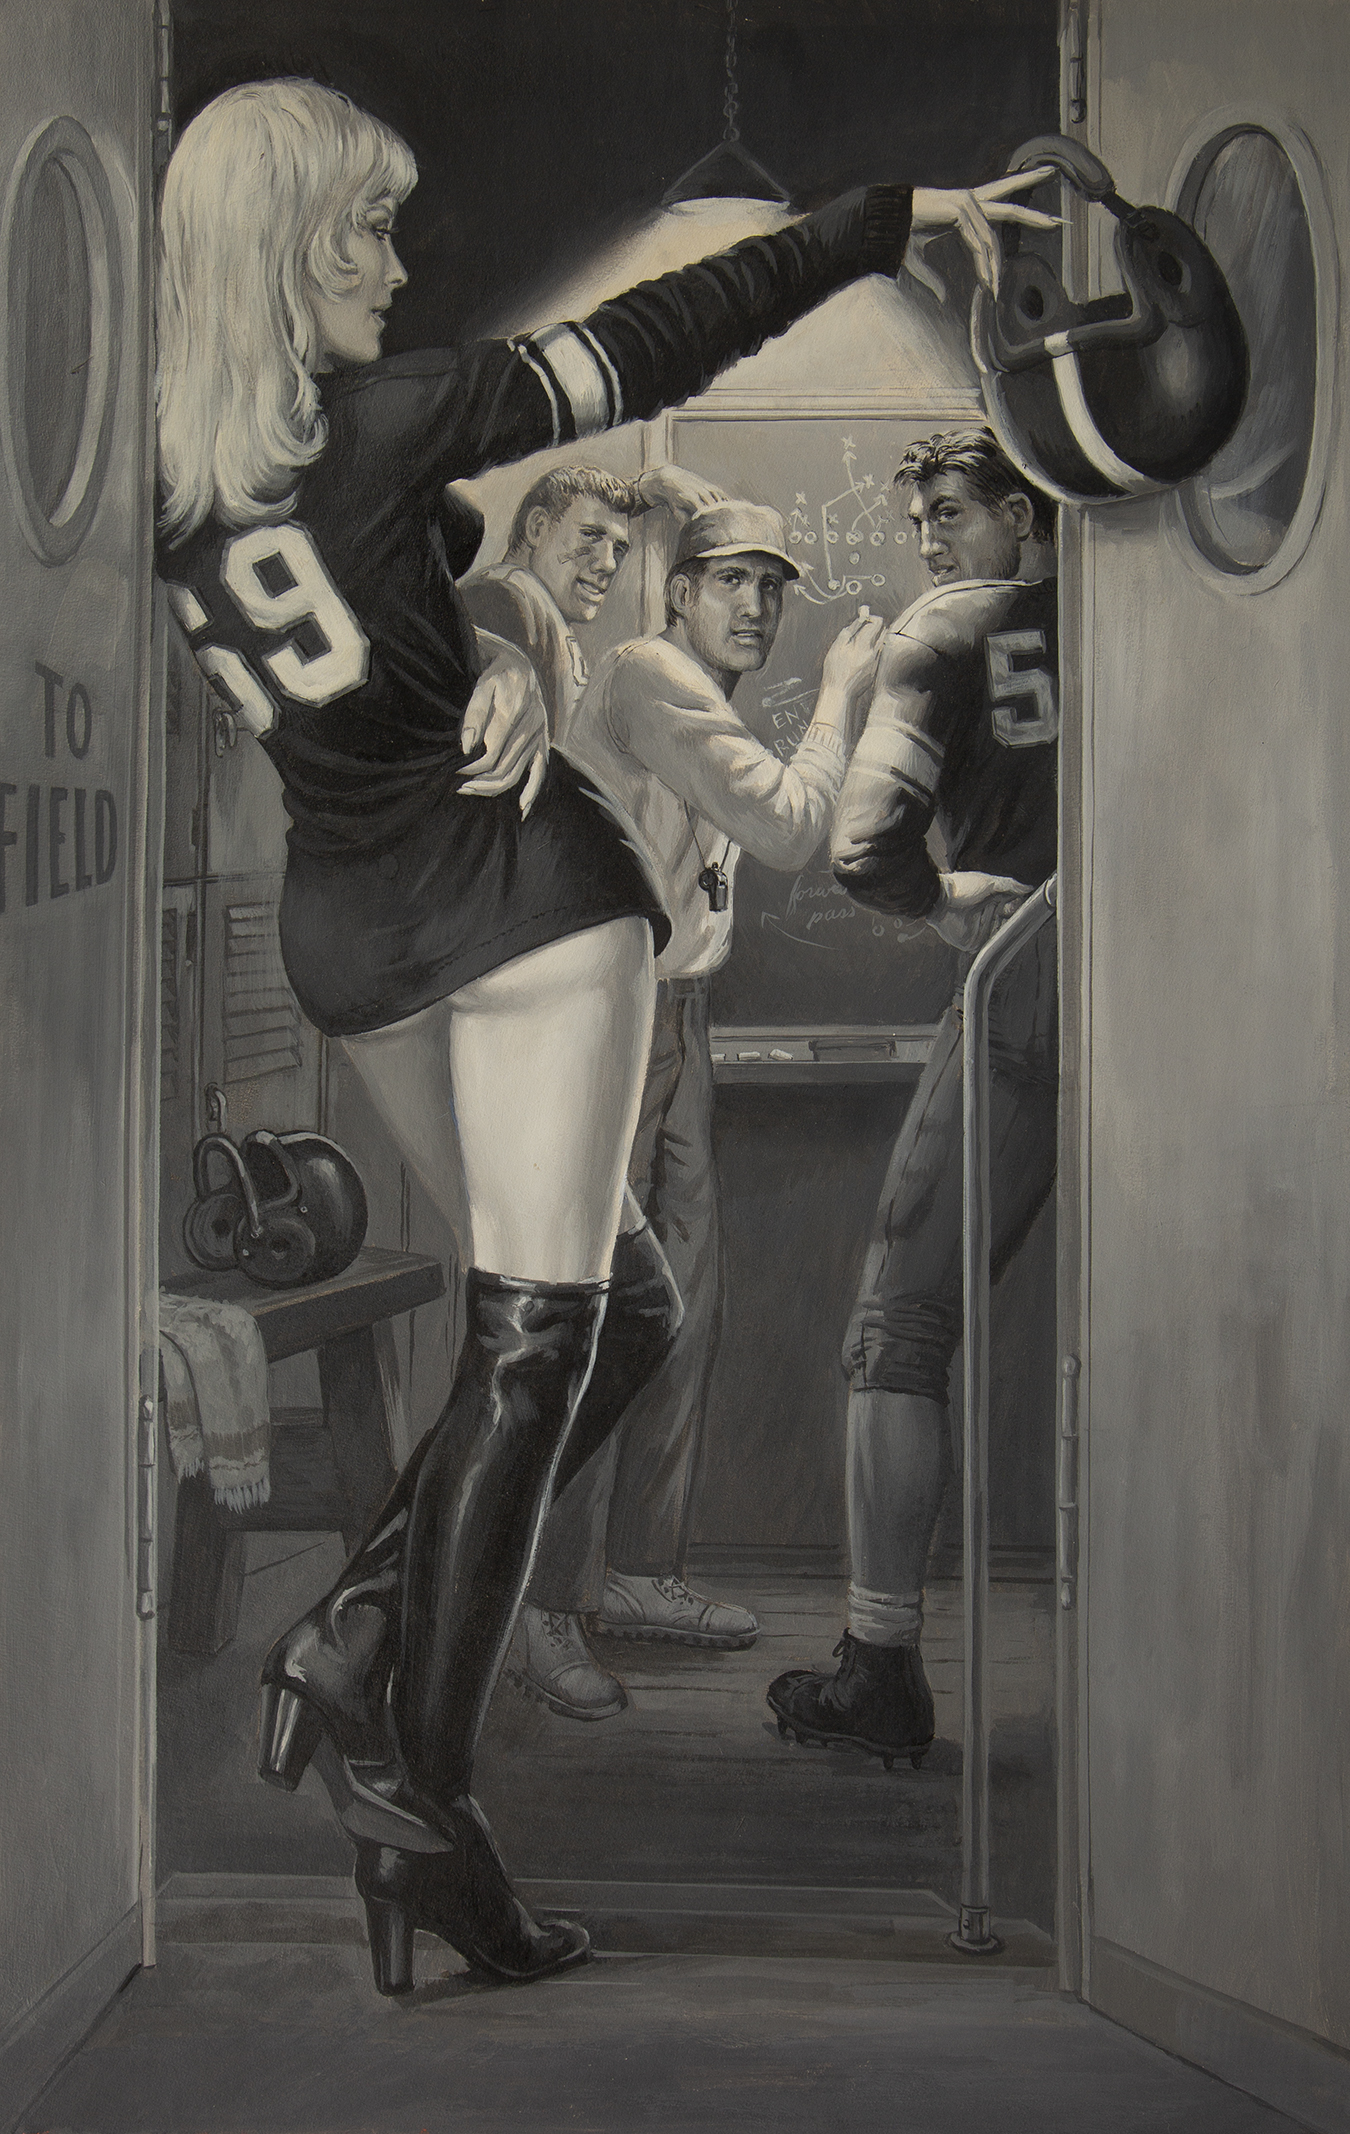 Samson Pollen illustration of a sexy pin-up girl in a football jersey flirting with players in the locker room